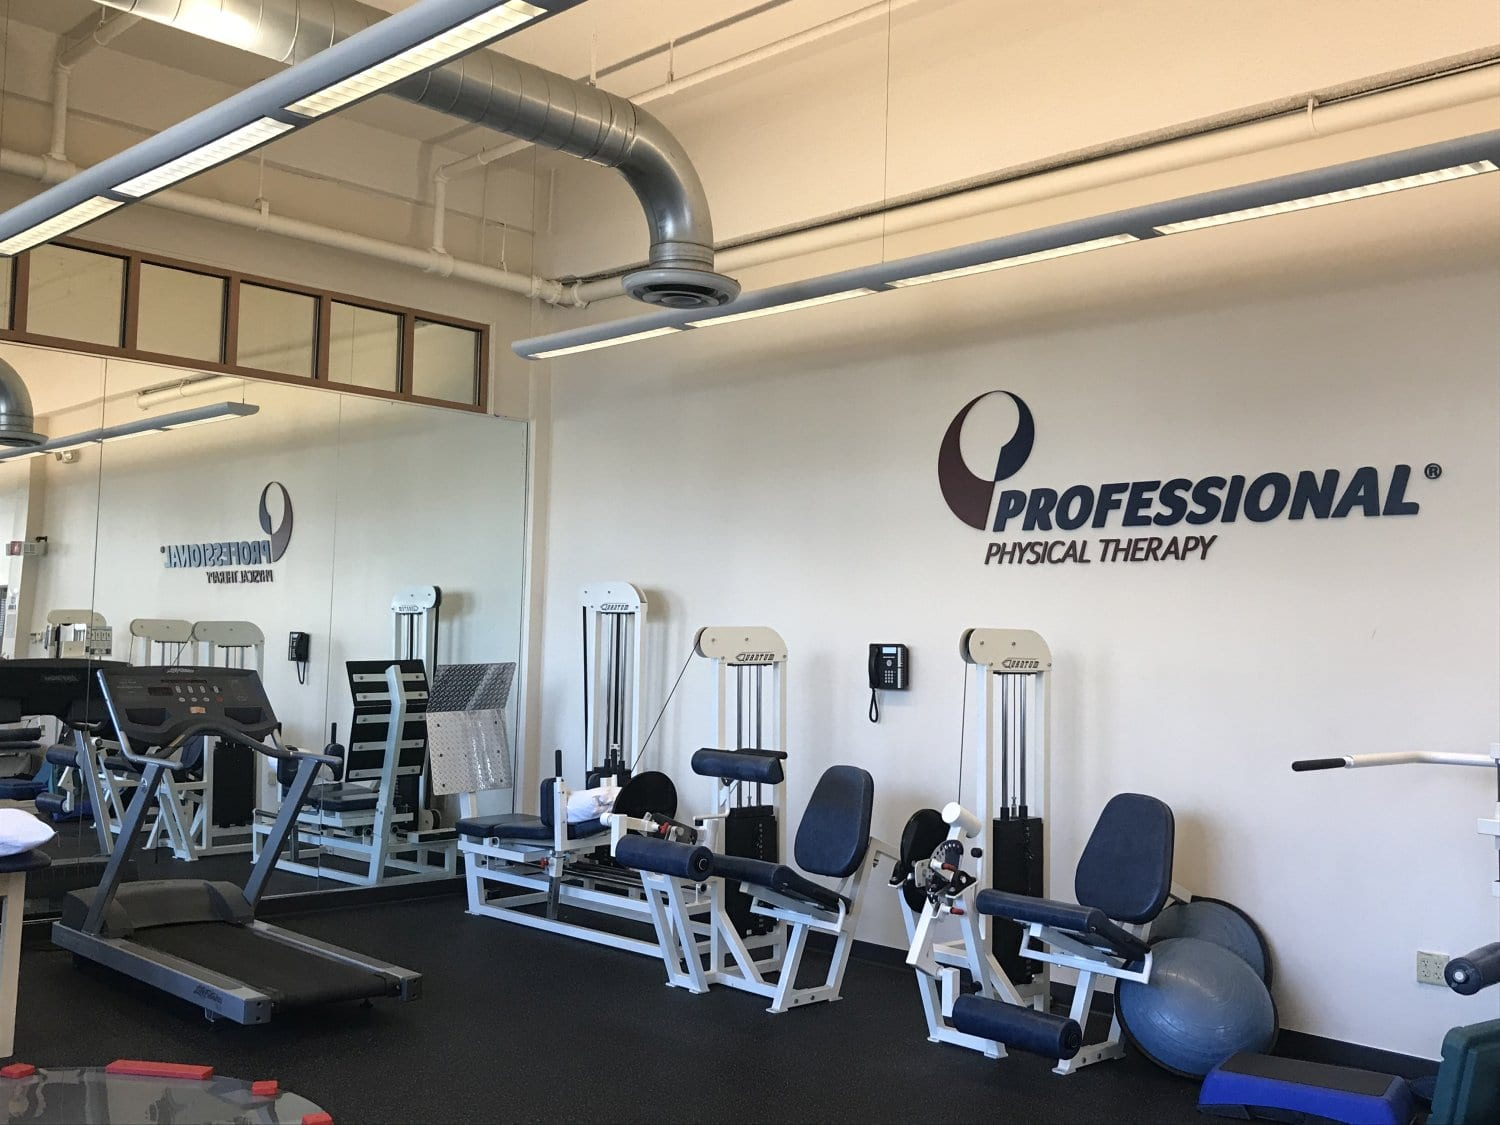 An image of the interior training room for our physical therapy clinic in Montclair, New Jersey at Greenwood.